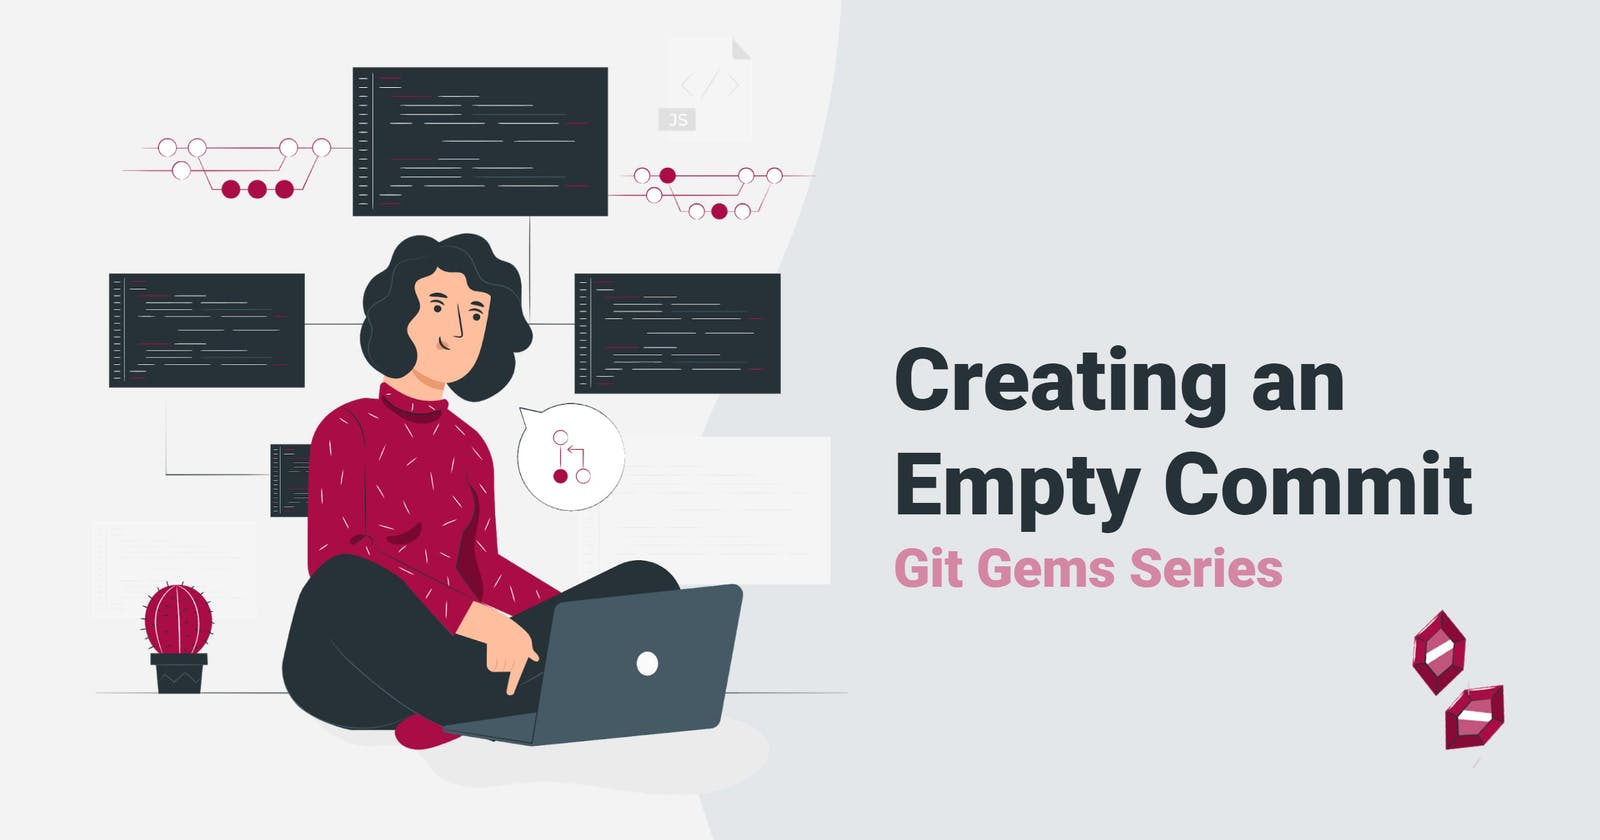 Creating an Empty Commit